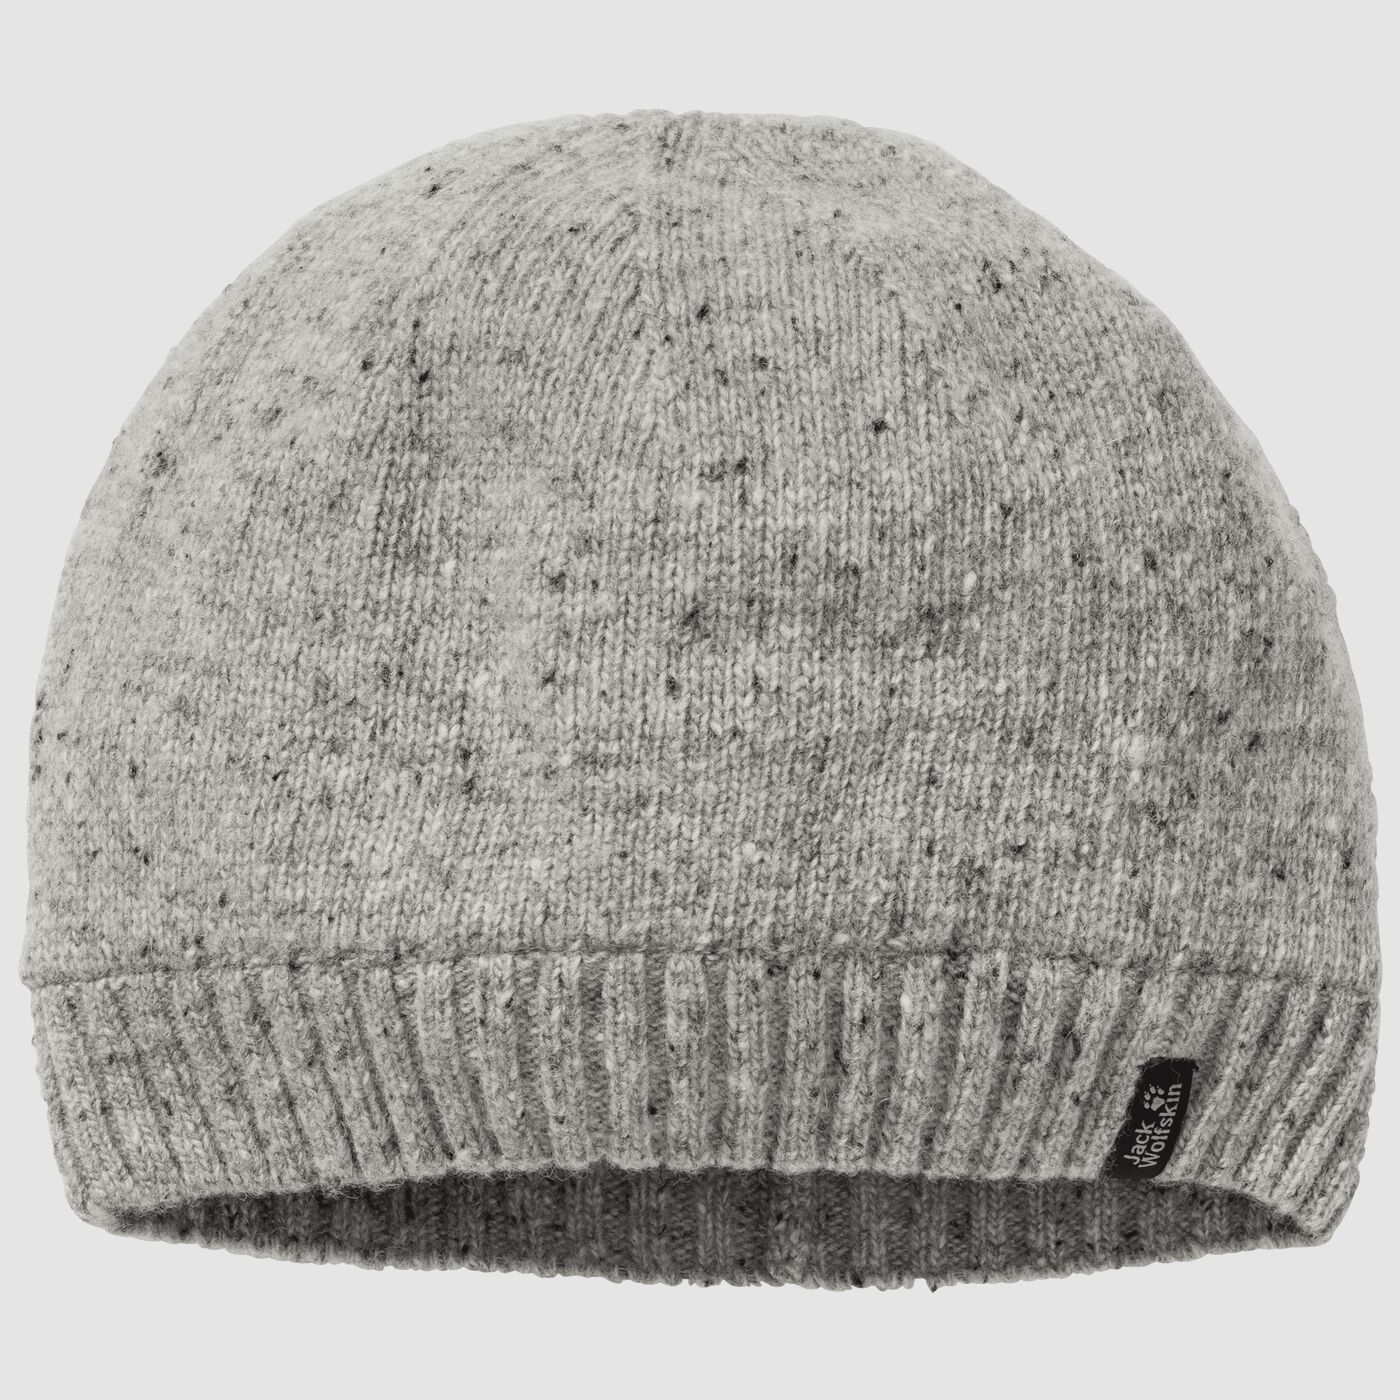 STORMLOCK WOOL CAP